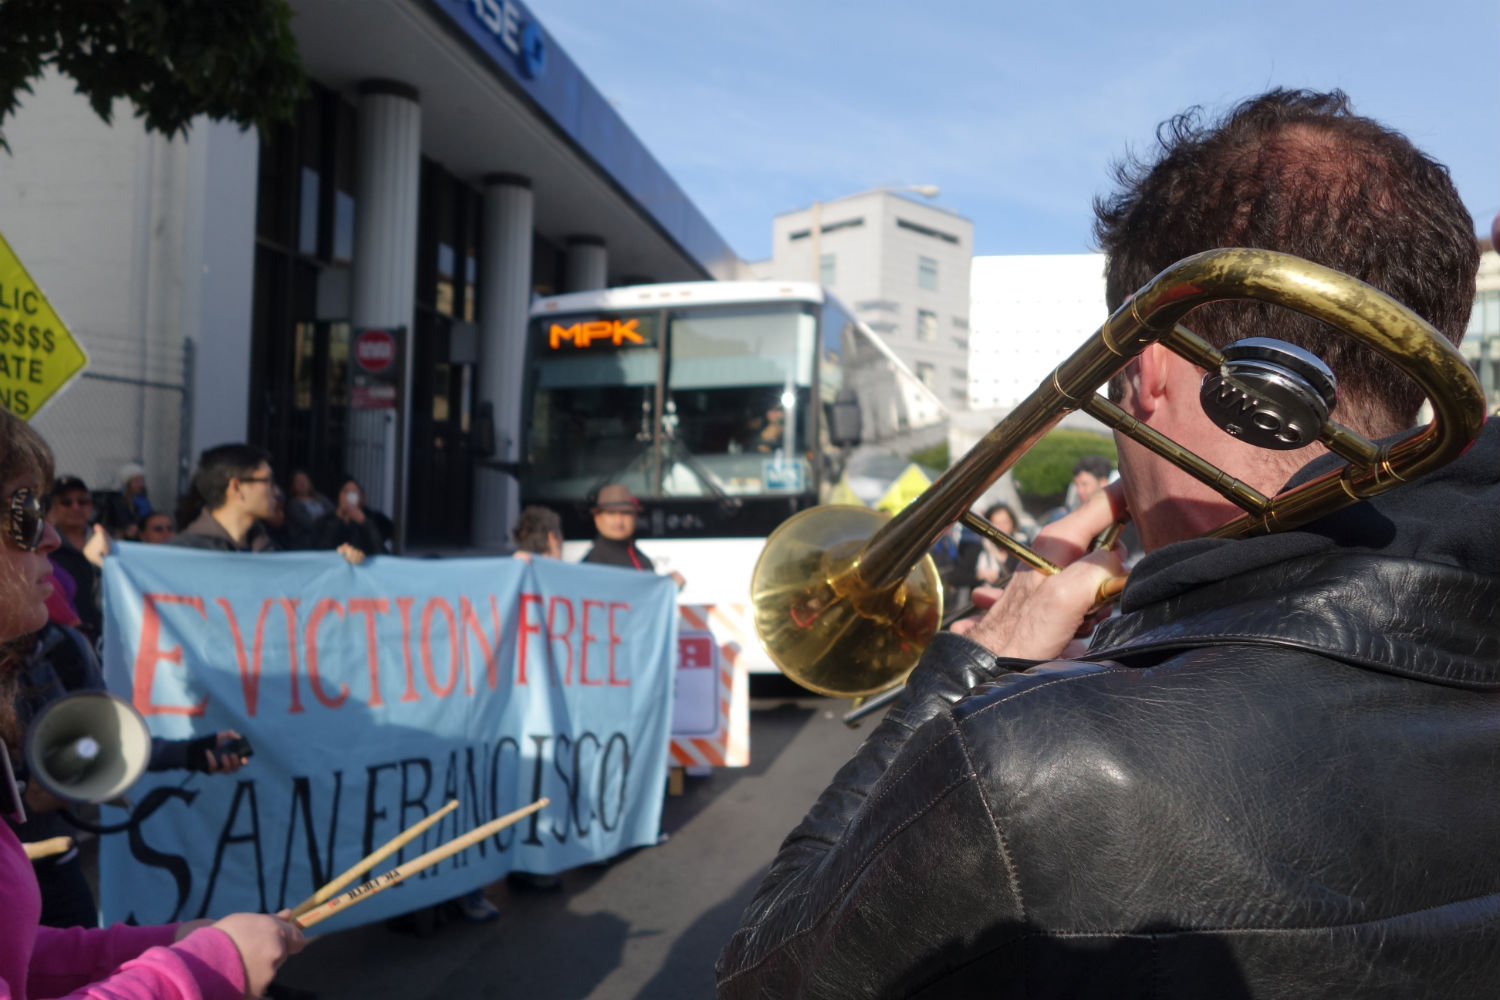 Anti-eviction protestors, including a band called the Brass Liberation Orchestra, block a private shuttle taking Facebook employees to the company headquarters in Menlo Park, Calif. on Jan. 21, 2013.